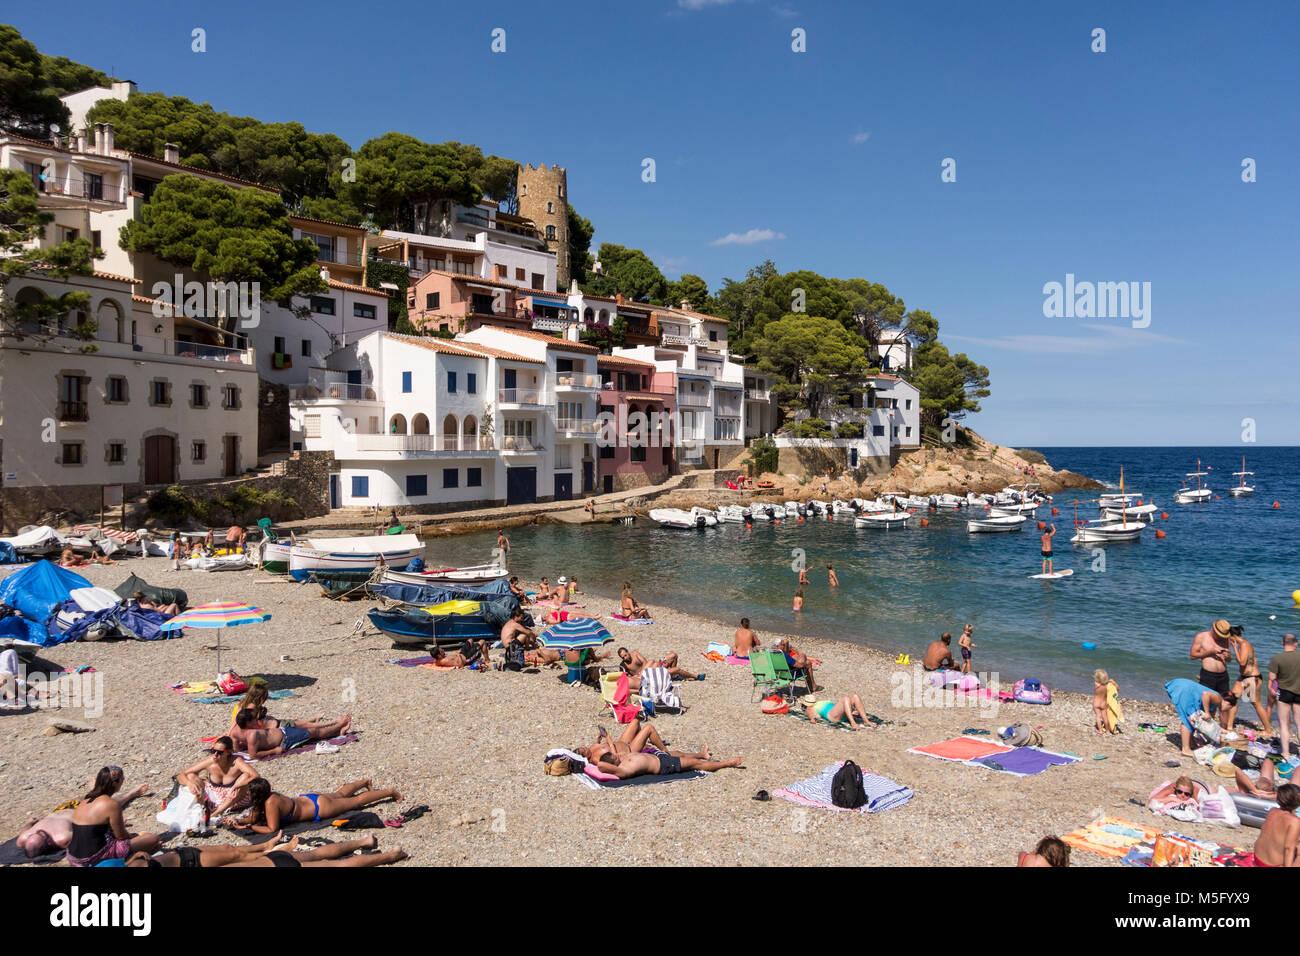 Holidaymakers on the beach at Cove of Sa Tuna, Begur, Baix d'Emporda, Costa Brava, Catalonia, Spain - Stock Image